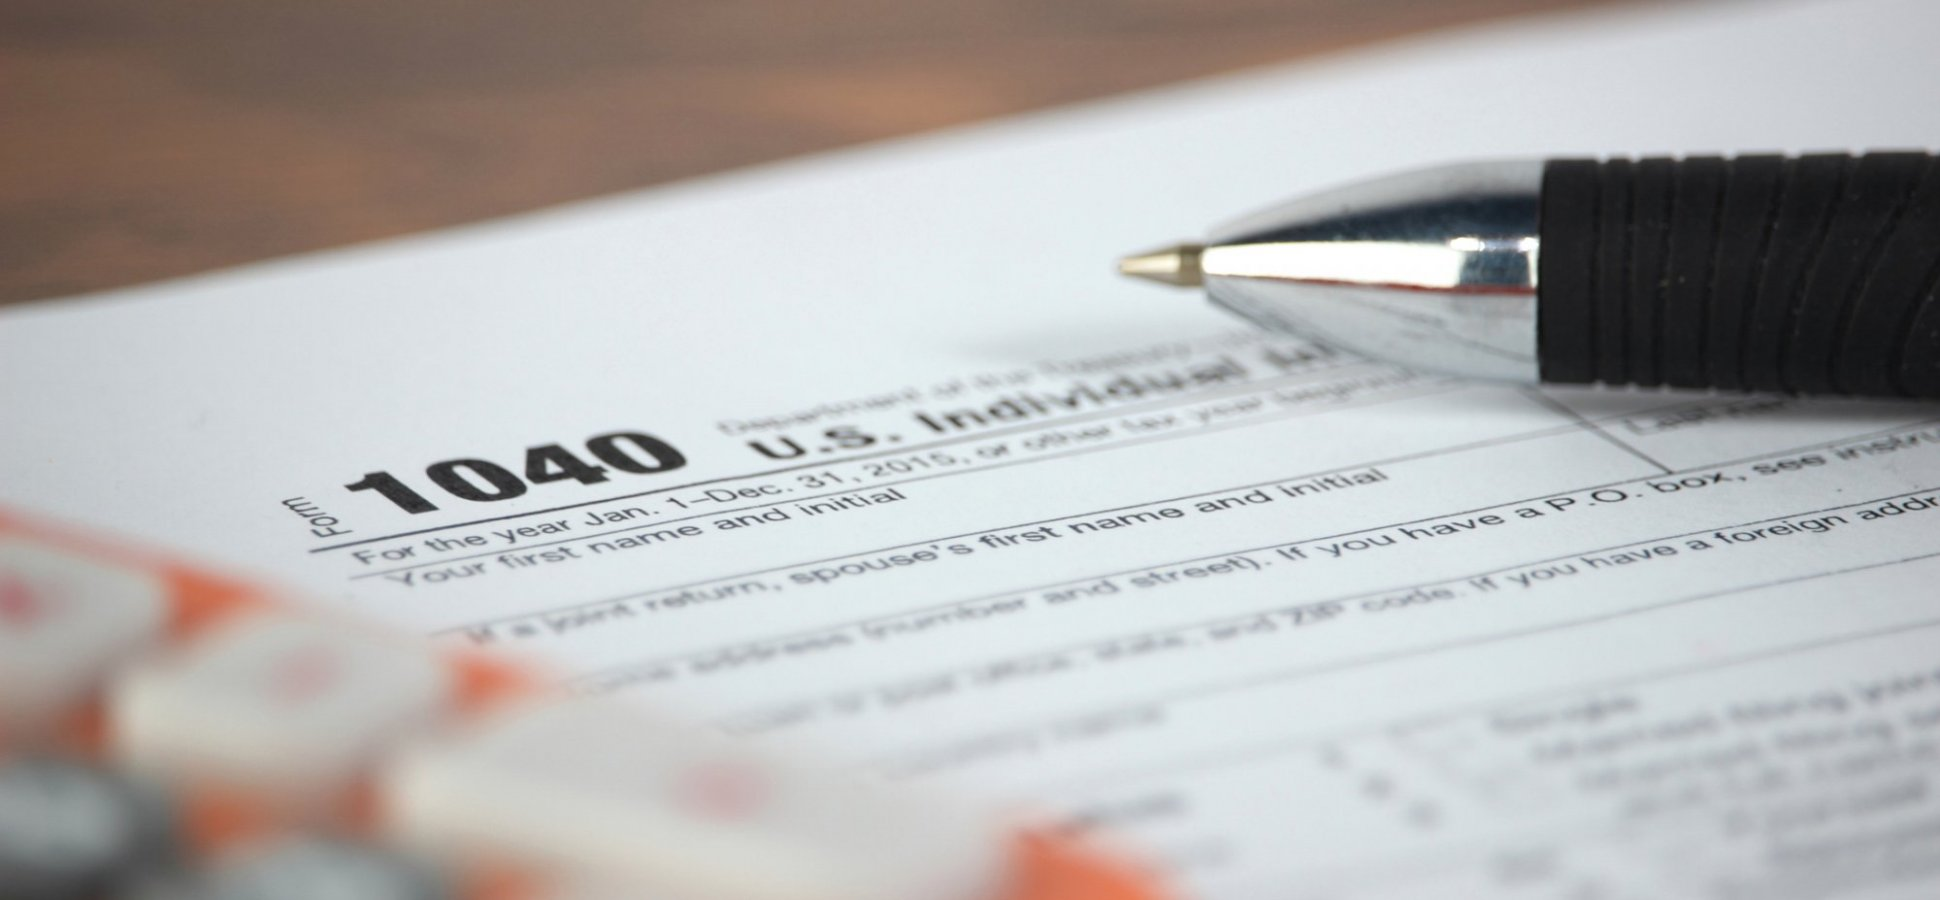 Filing Taxes as a Self-Employed Individual? Watch Out for These 7 Audit Triggers